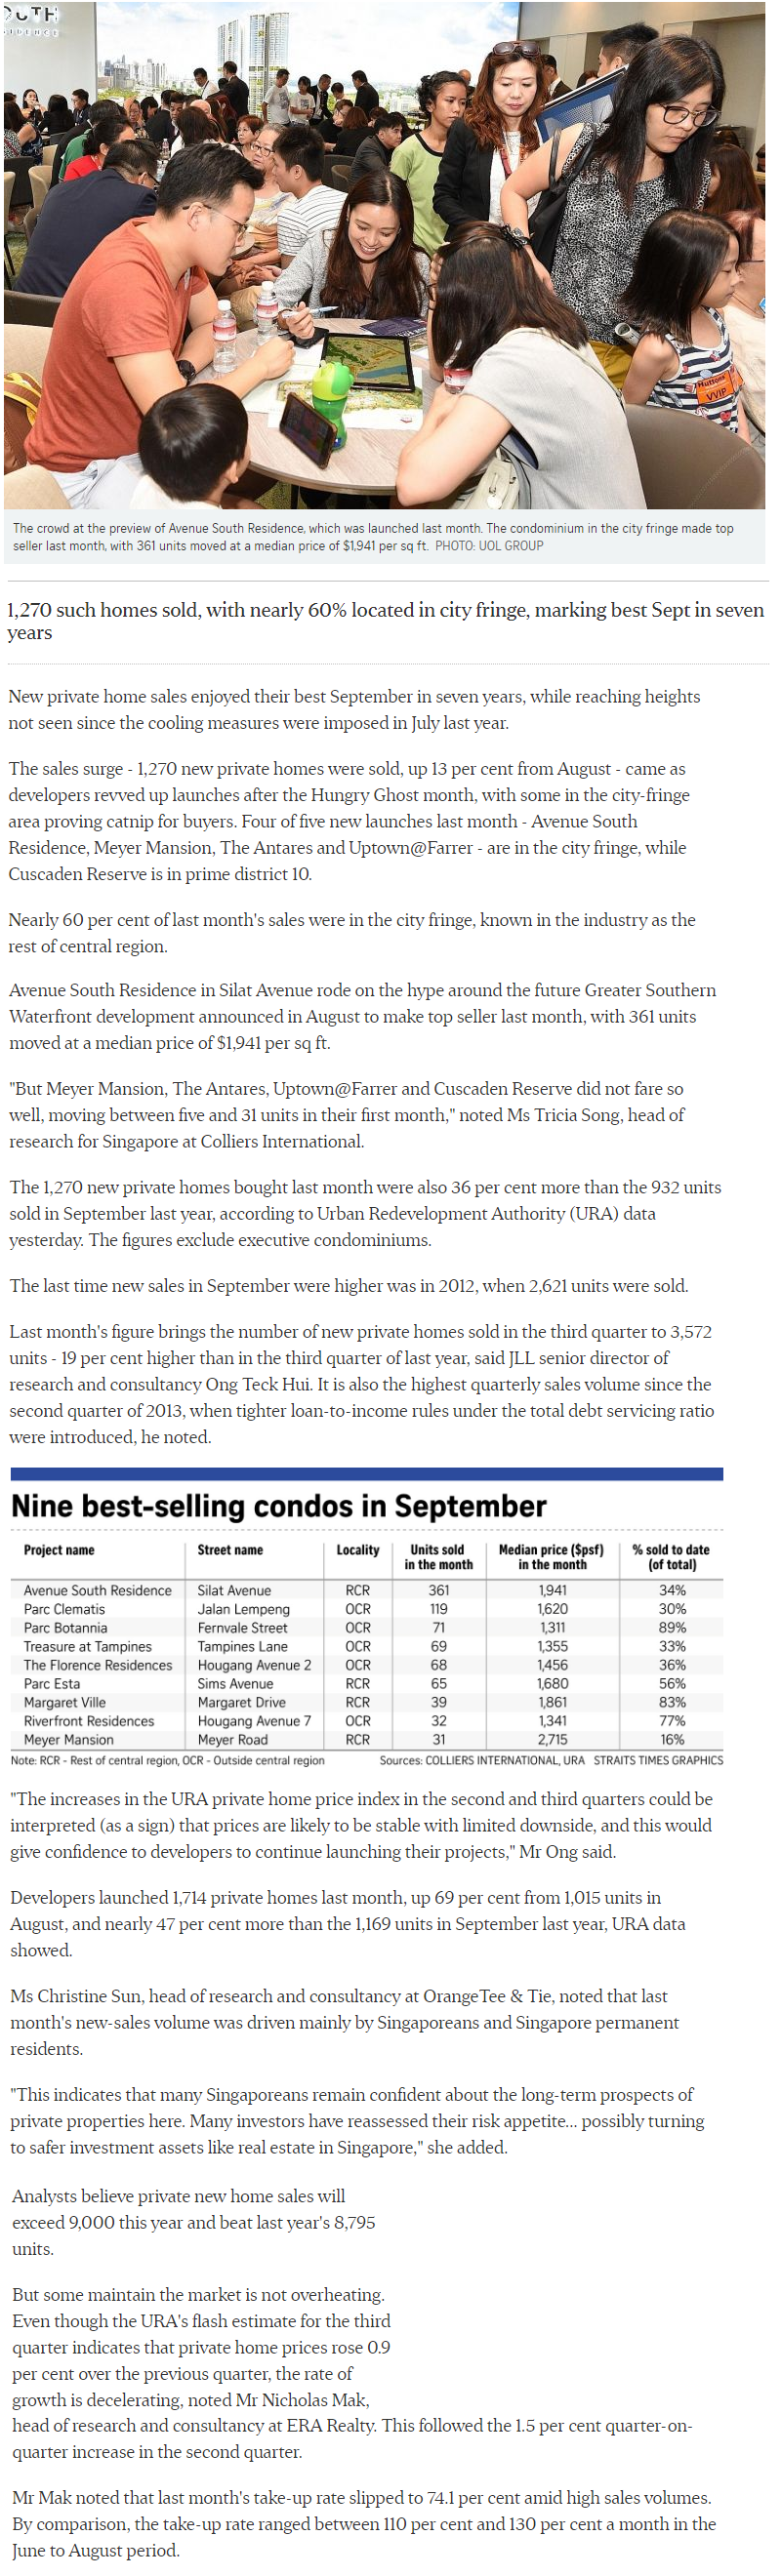 One Draycott - New private Home Sales Hit A Hight In September